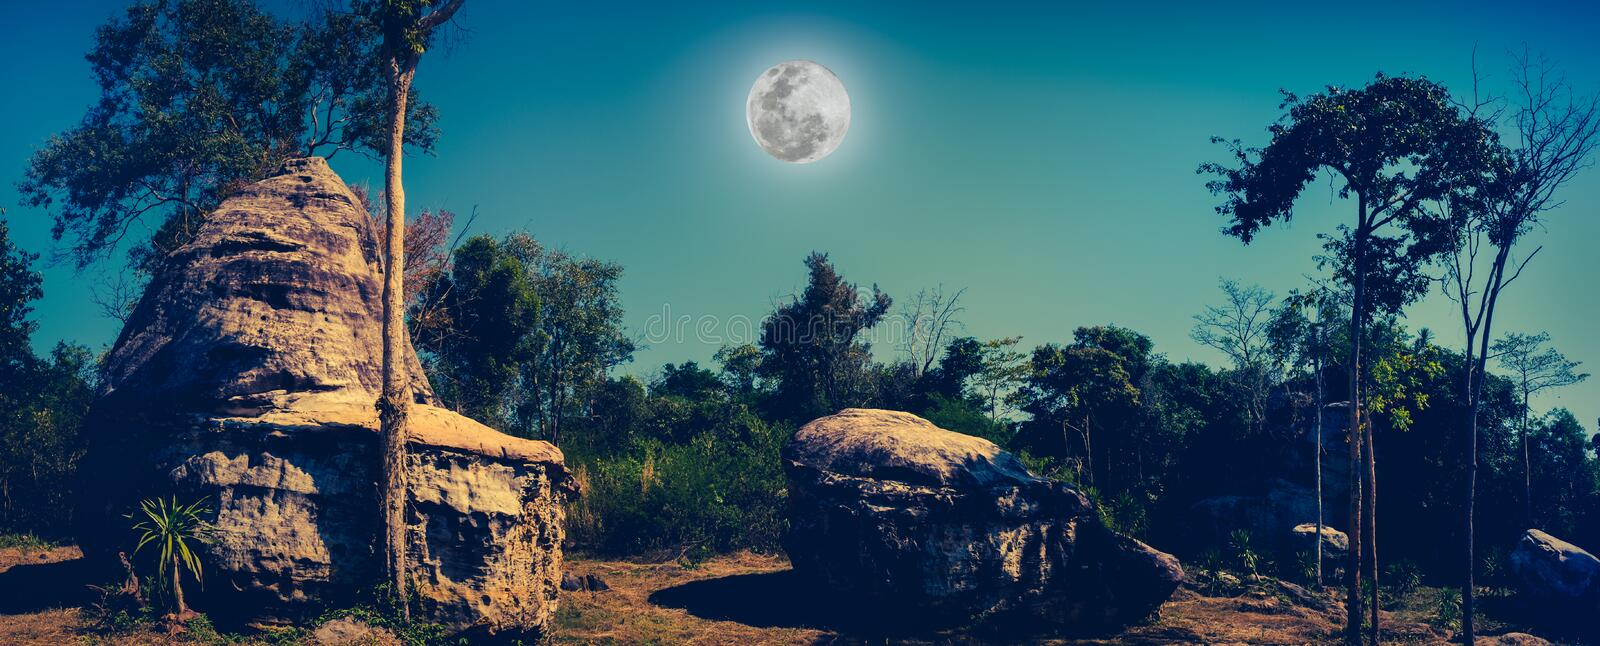 Panorama of boulders against beautiful sky and full moon over tr stock image